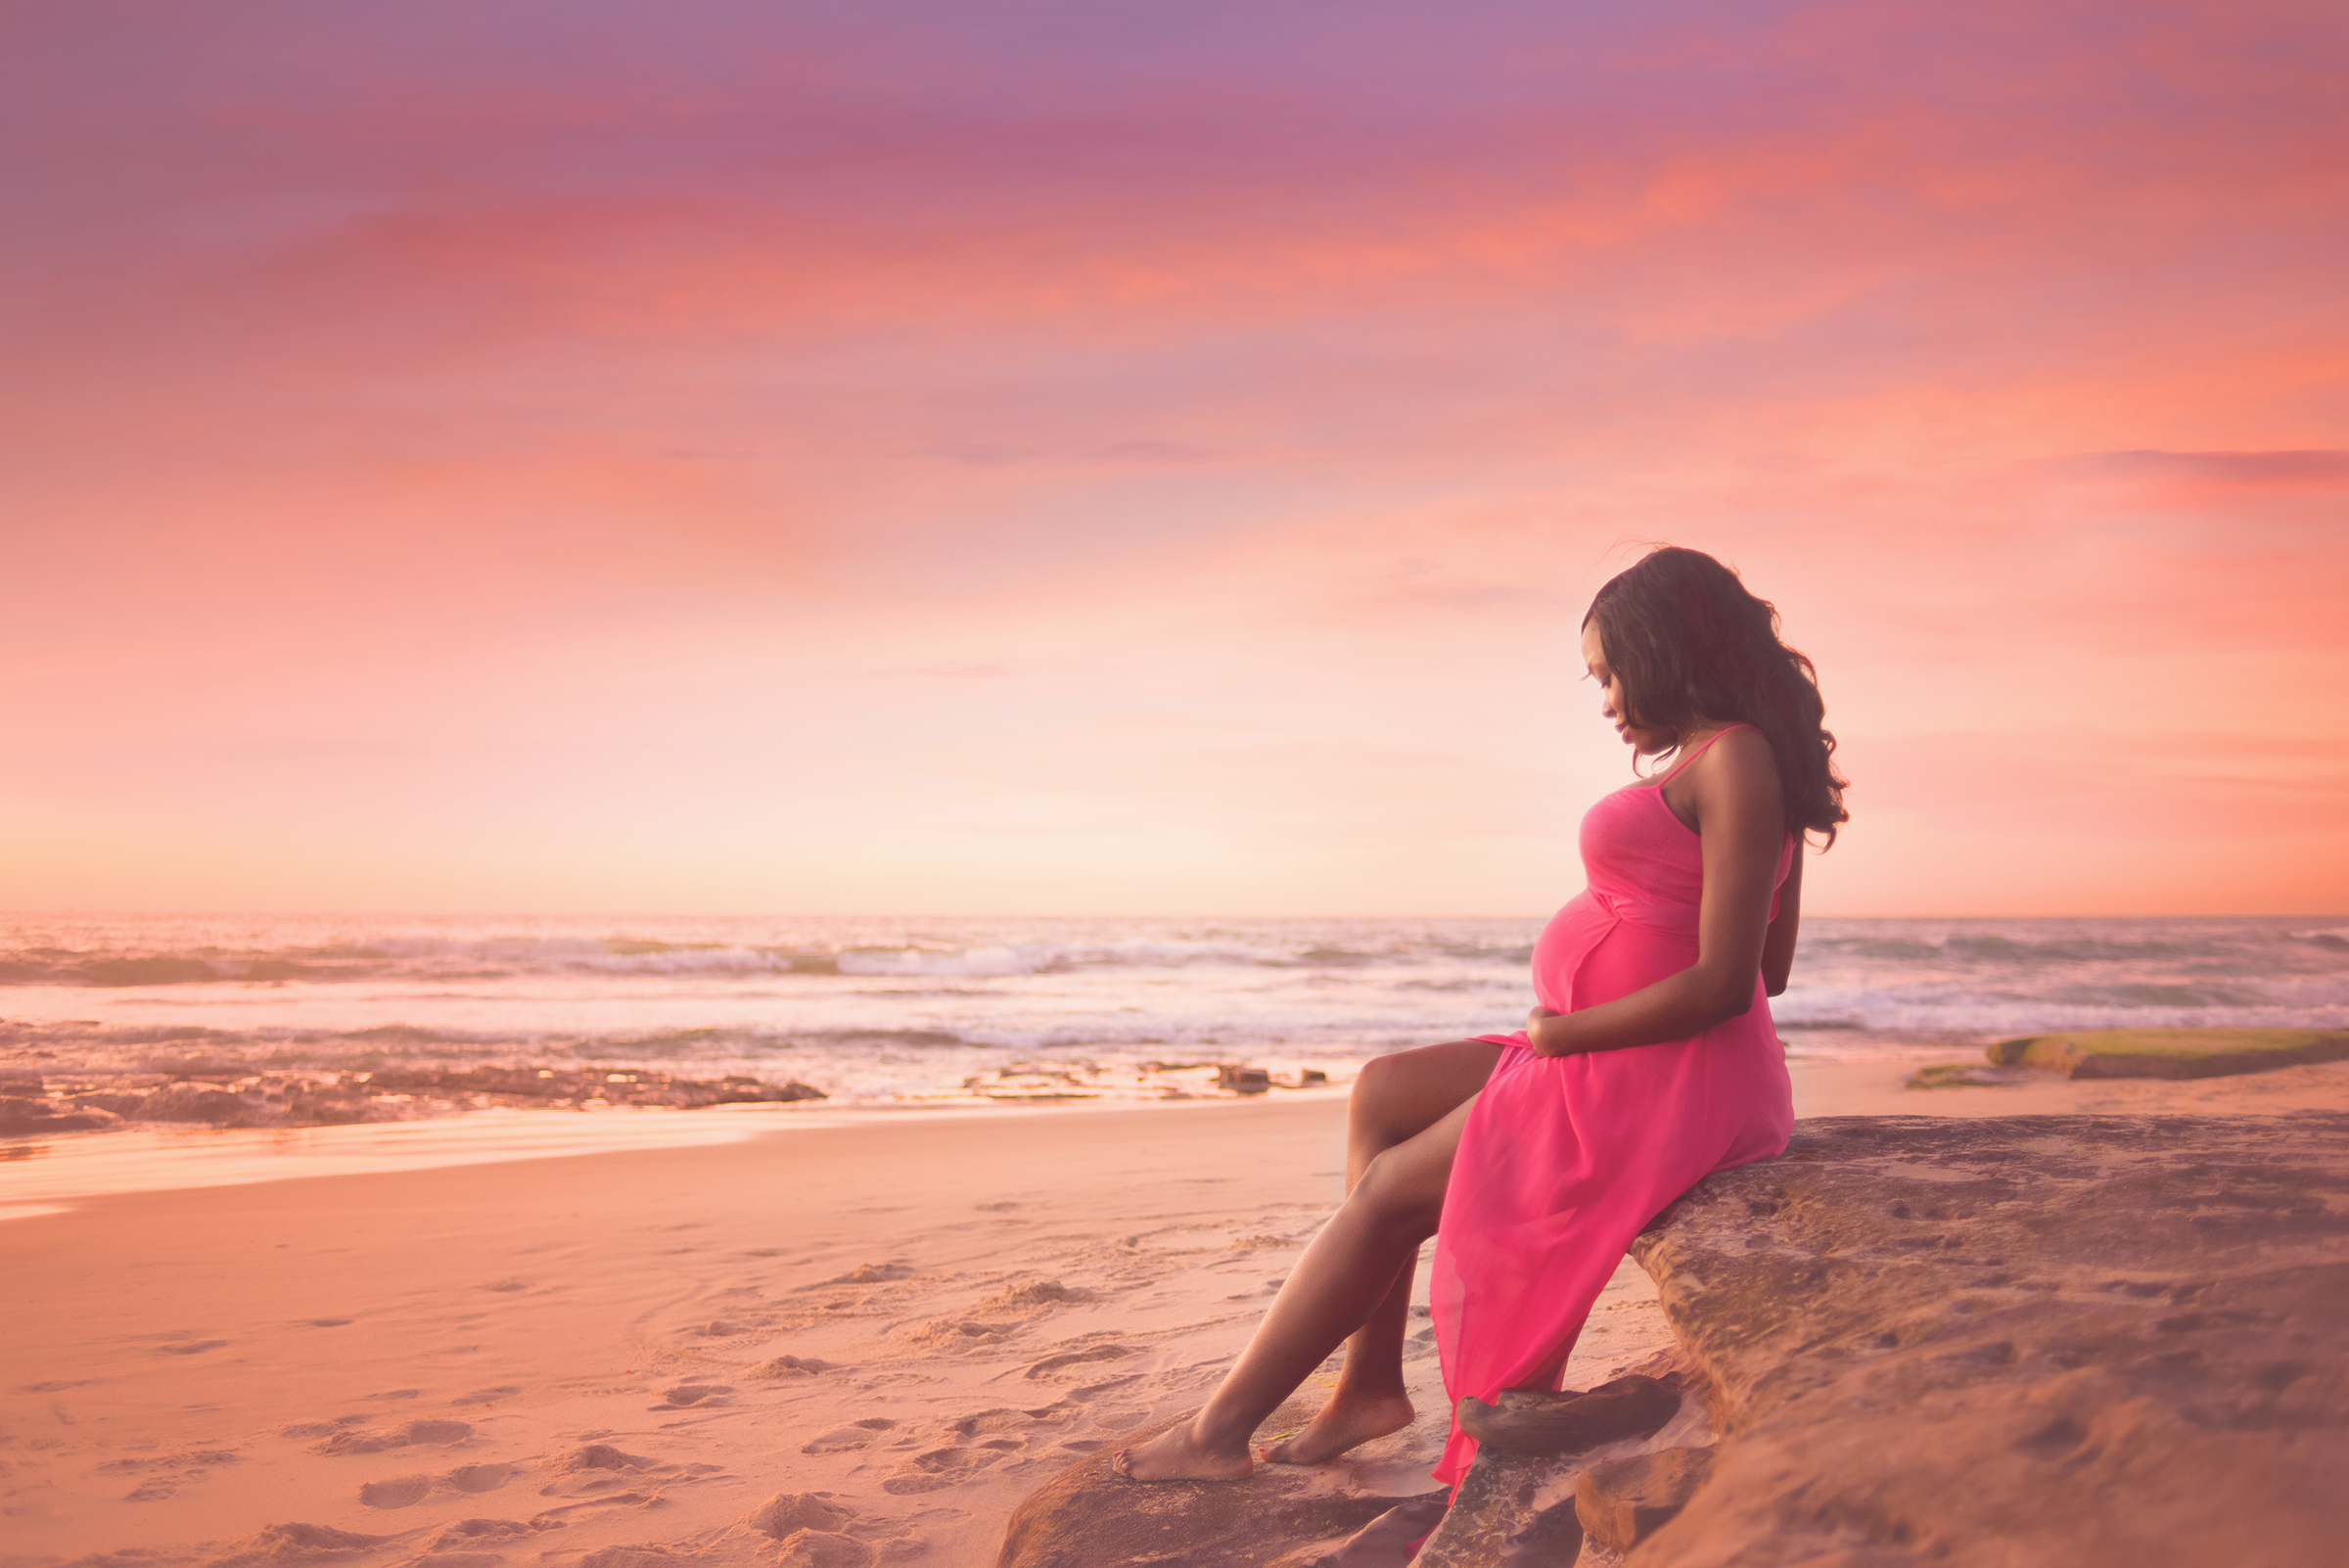 Stunning maternity photo session at sunset with colorful skies in San Diego beach